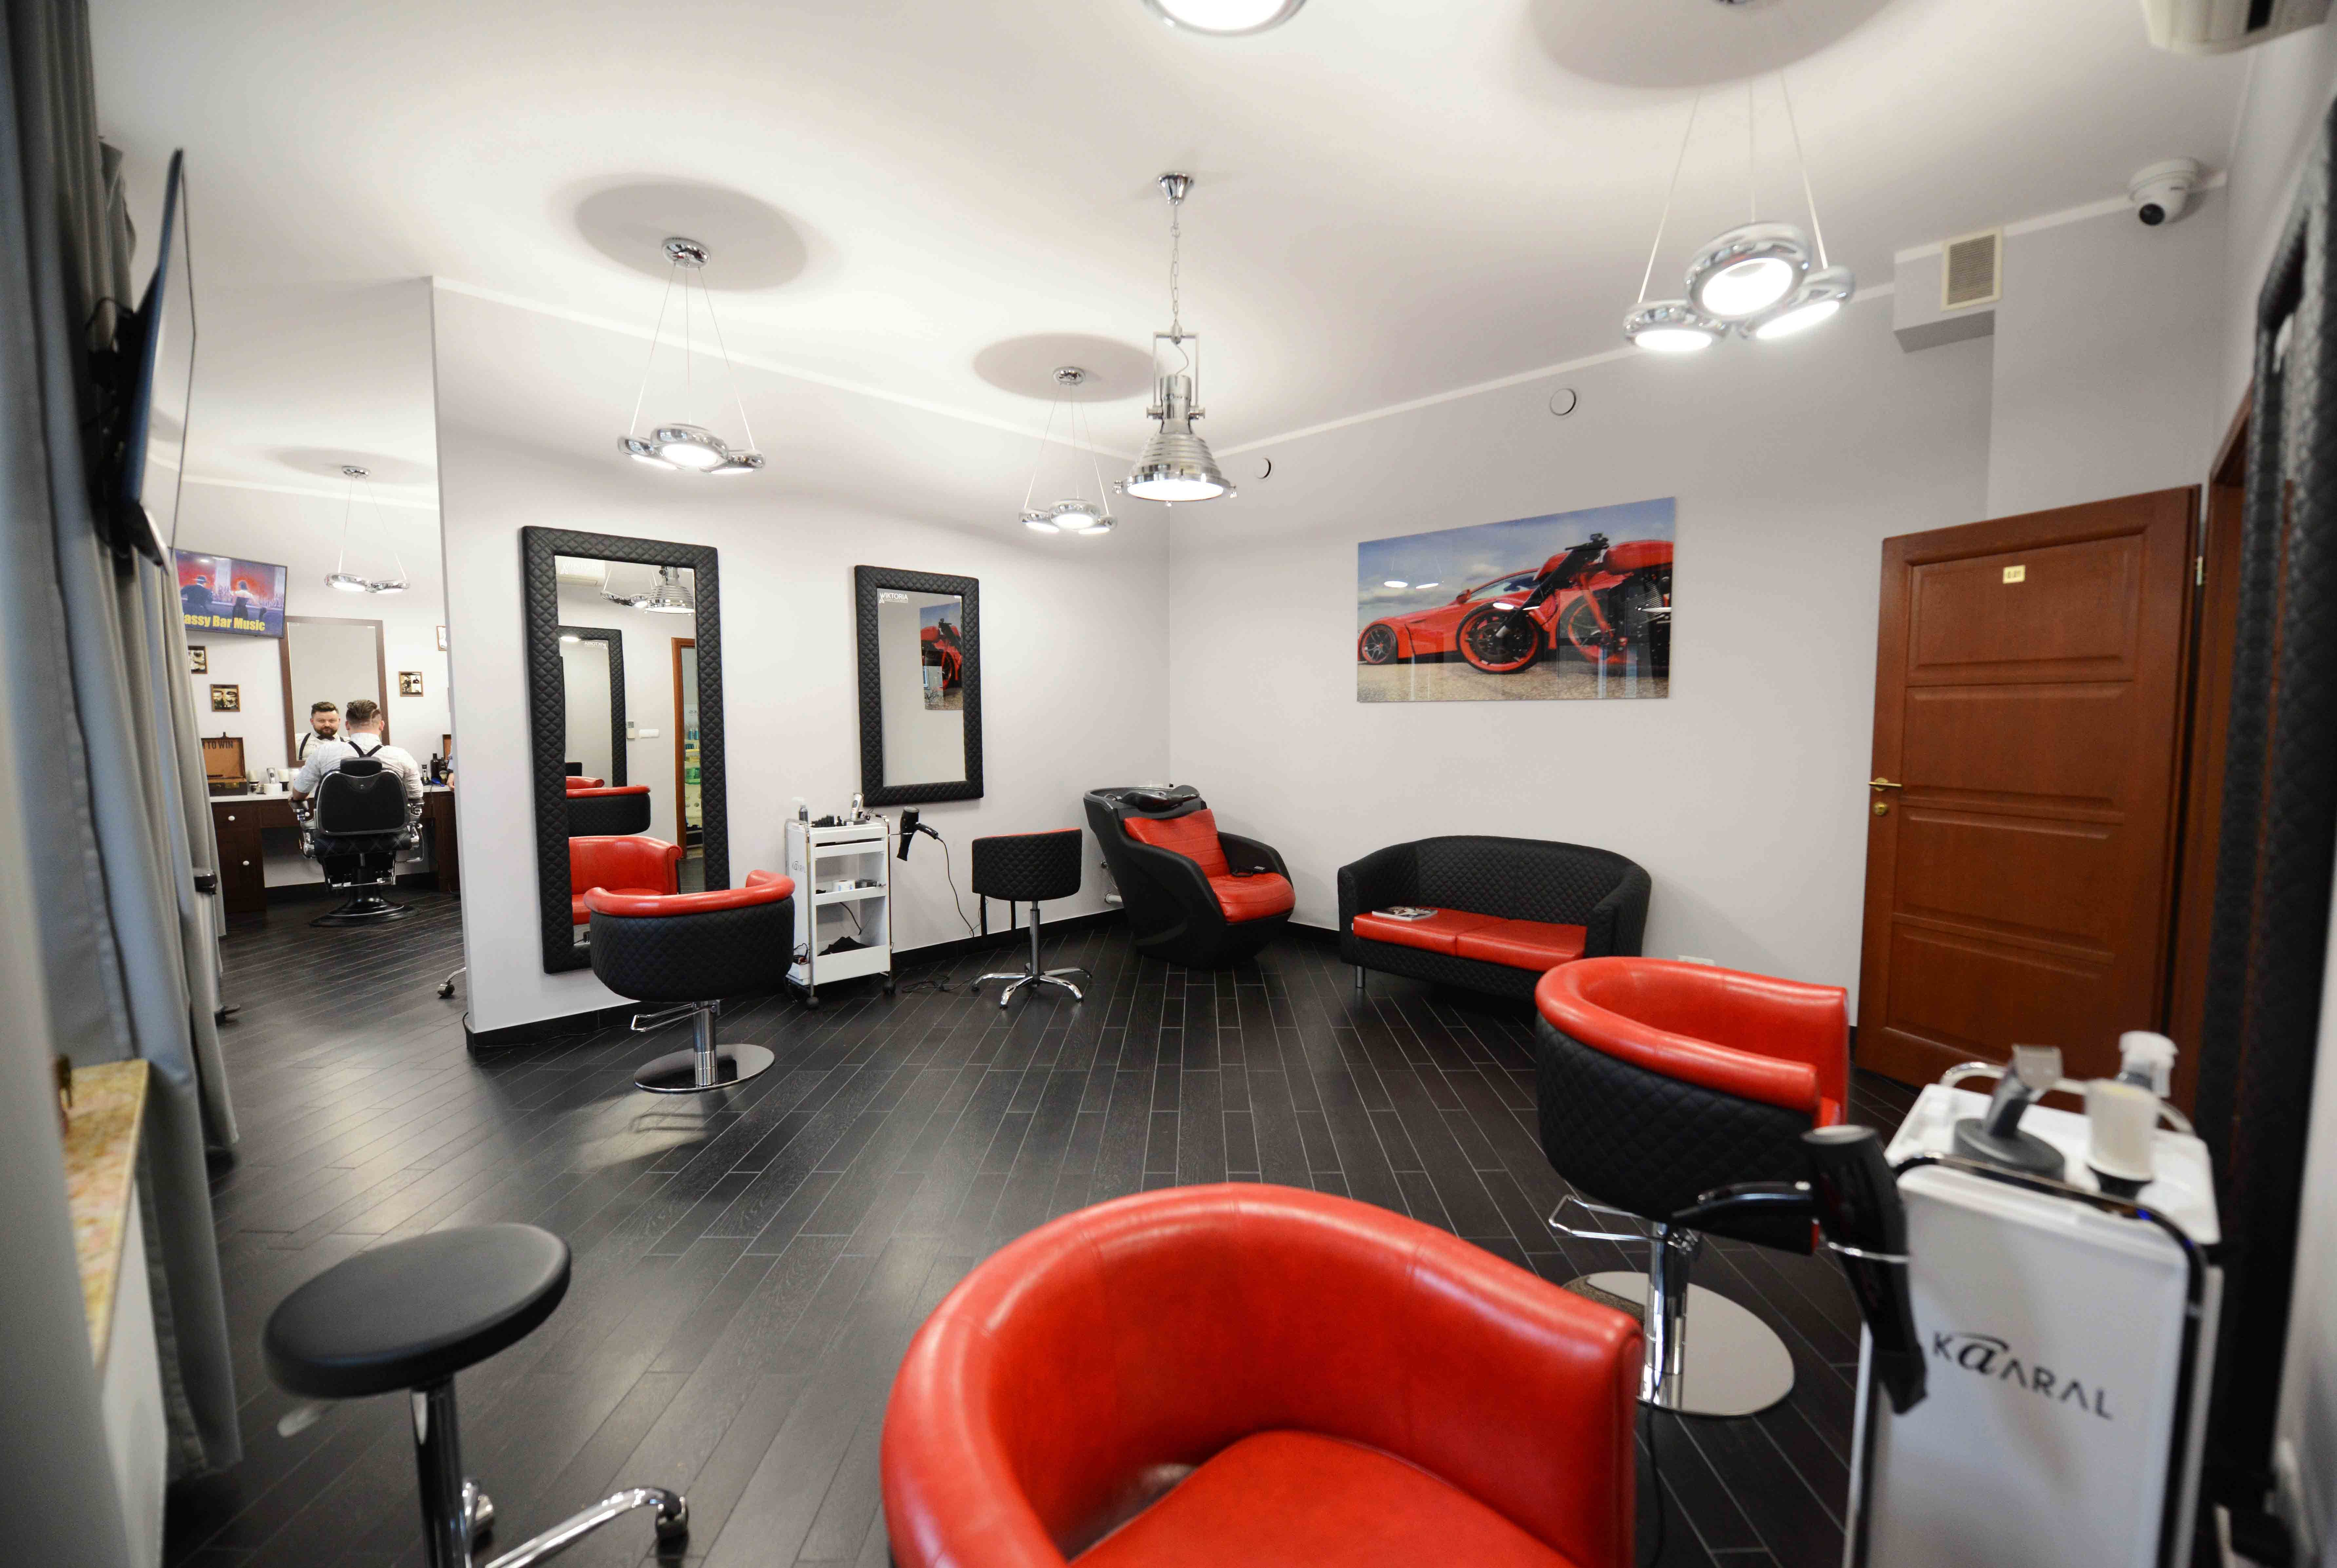 Hair salon- STUDIO WIKTORIA POLAND REFLECTION STYLING chairs and ...